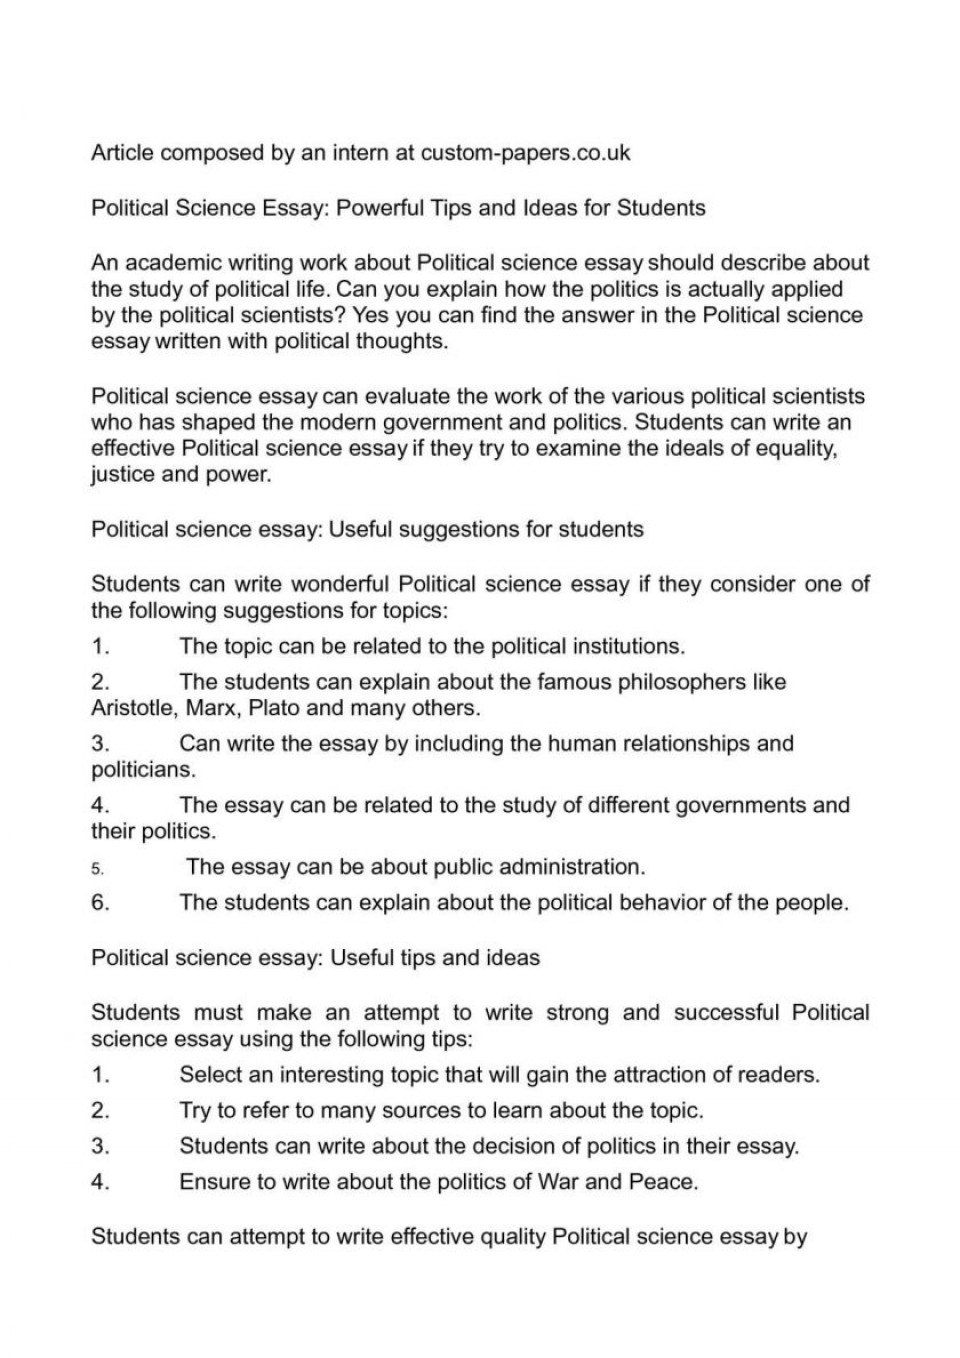 014 Essay Macbeth Ideas Science Argumentative Topics Good Photo Easy To Write Abo Aboutsearch Paper Personal Descriptive Persuasive College Synthesis Informative Narrative 840x1189 Beautiful Research On A History Economics Biology 960